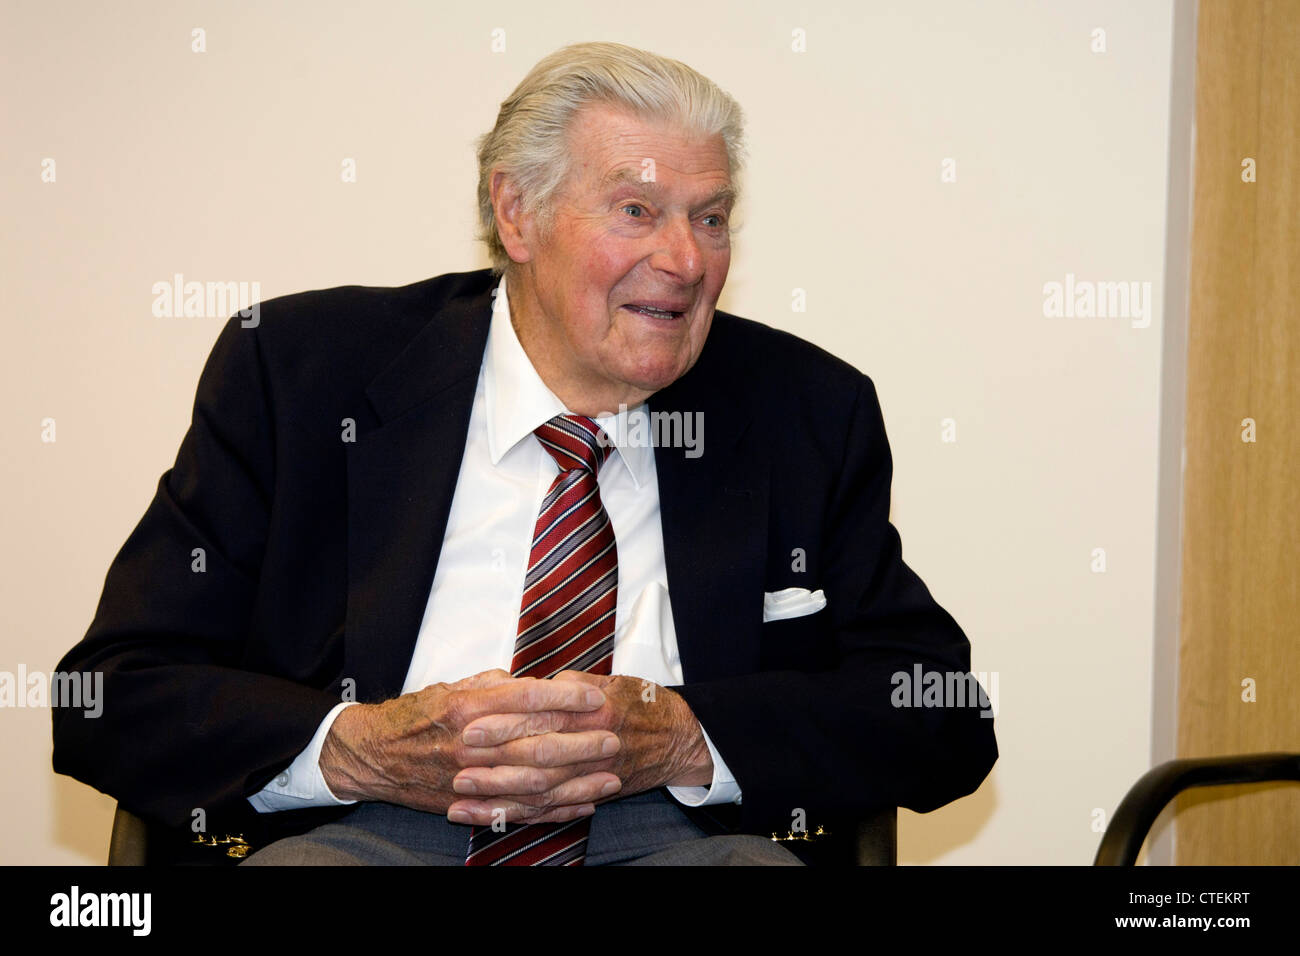 John Jacobs OBE pictured at the PGA training school after being honoured for his contribution to teaching  the game - Stock Image